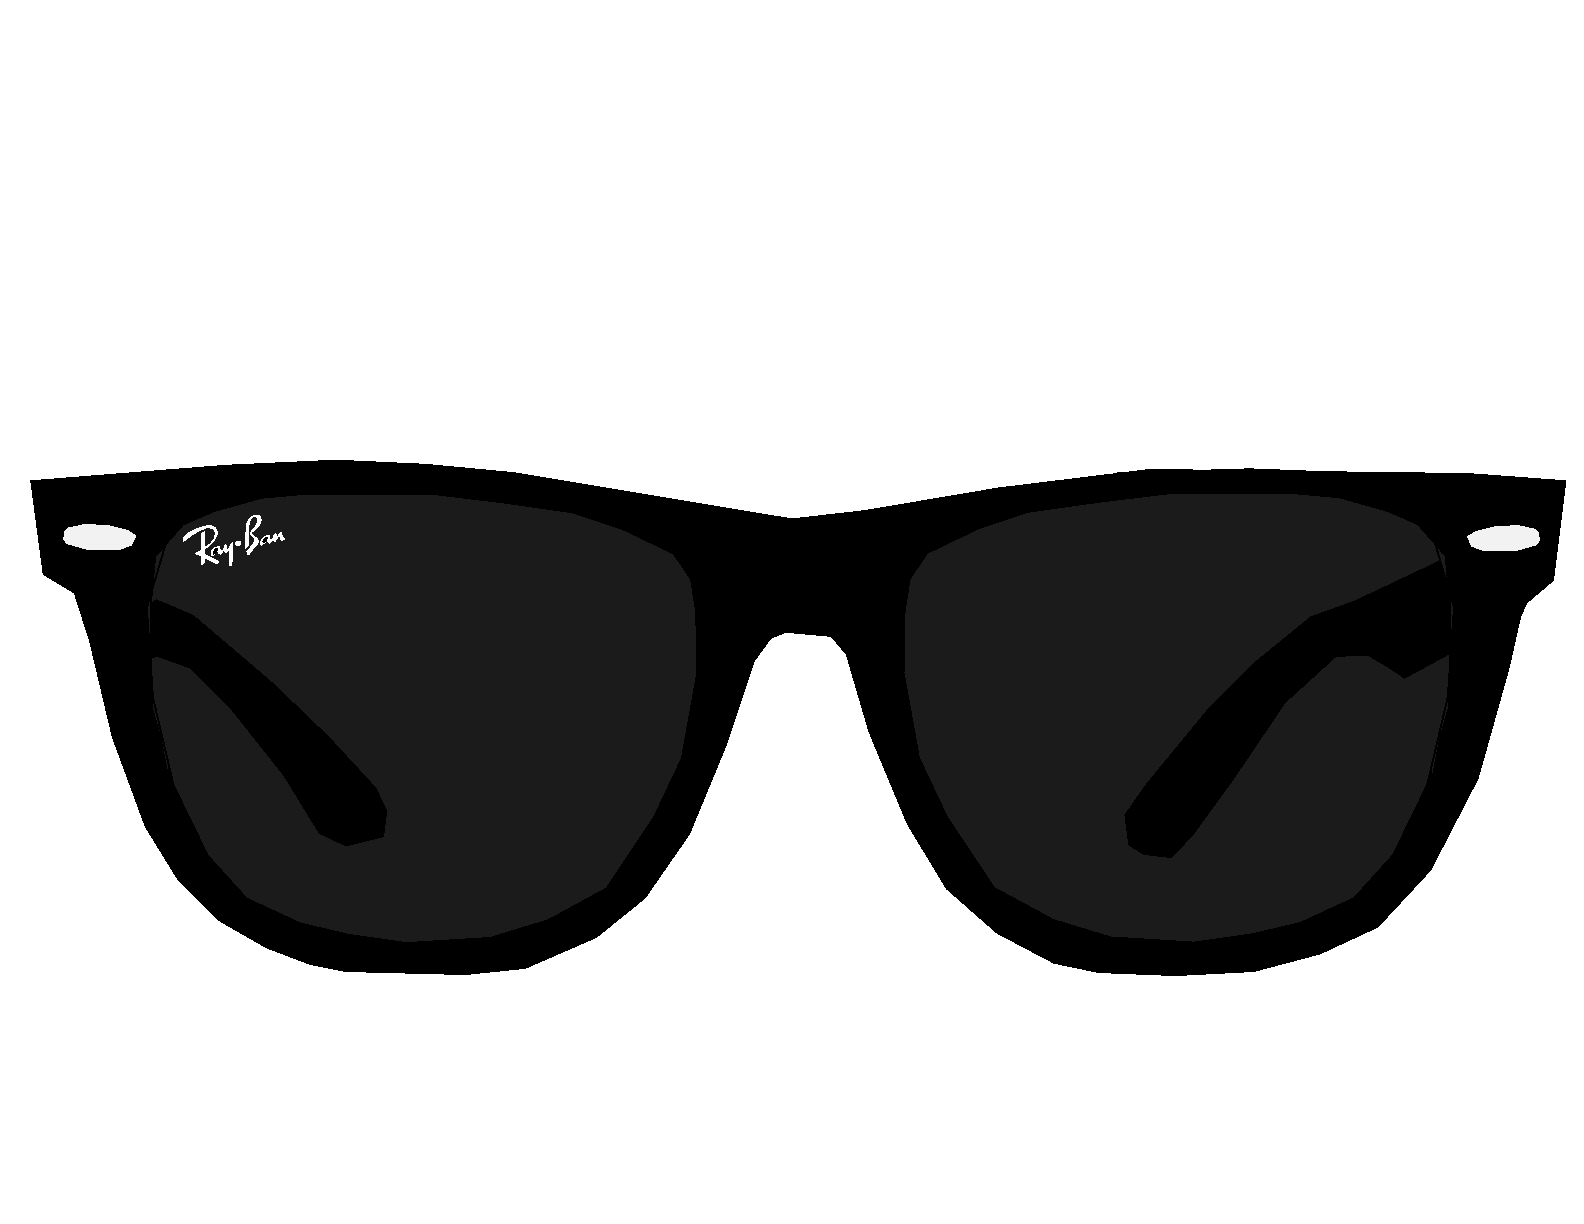 Ray Ban Glasses Clipart.